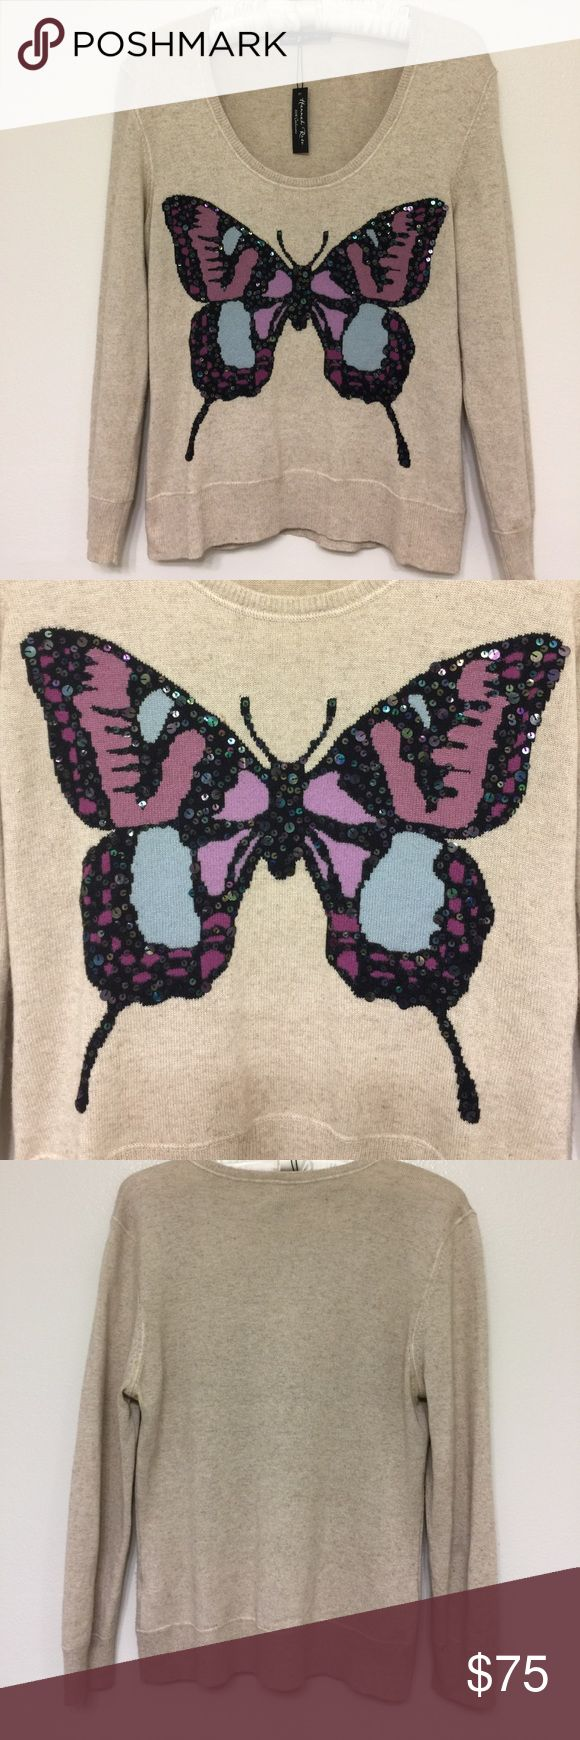 Hannah Rose Cashmere Sweater Hannah Rose 100% Cashmere  Sweater w/ sequined butterfly print. Size Medium. hannah rose Sweaters Crew & Scoop Necks